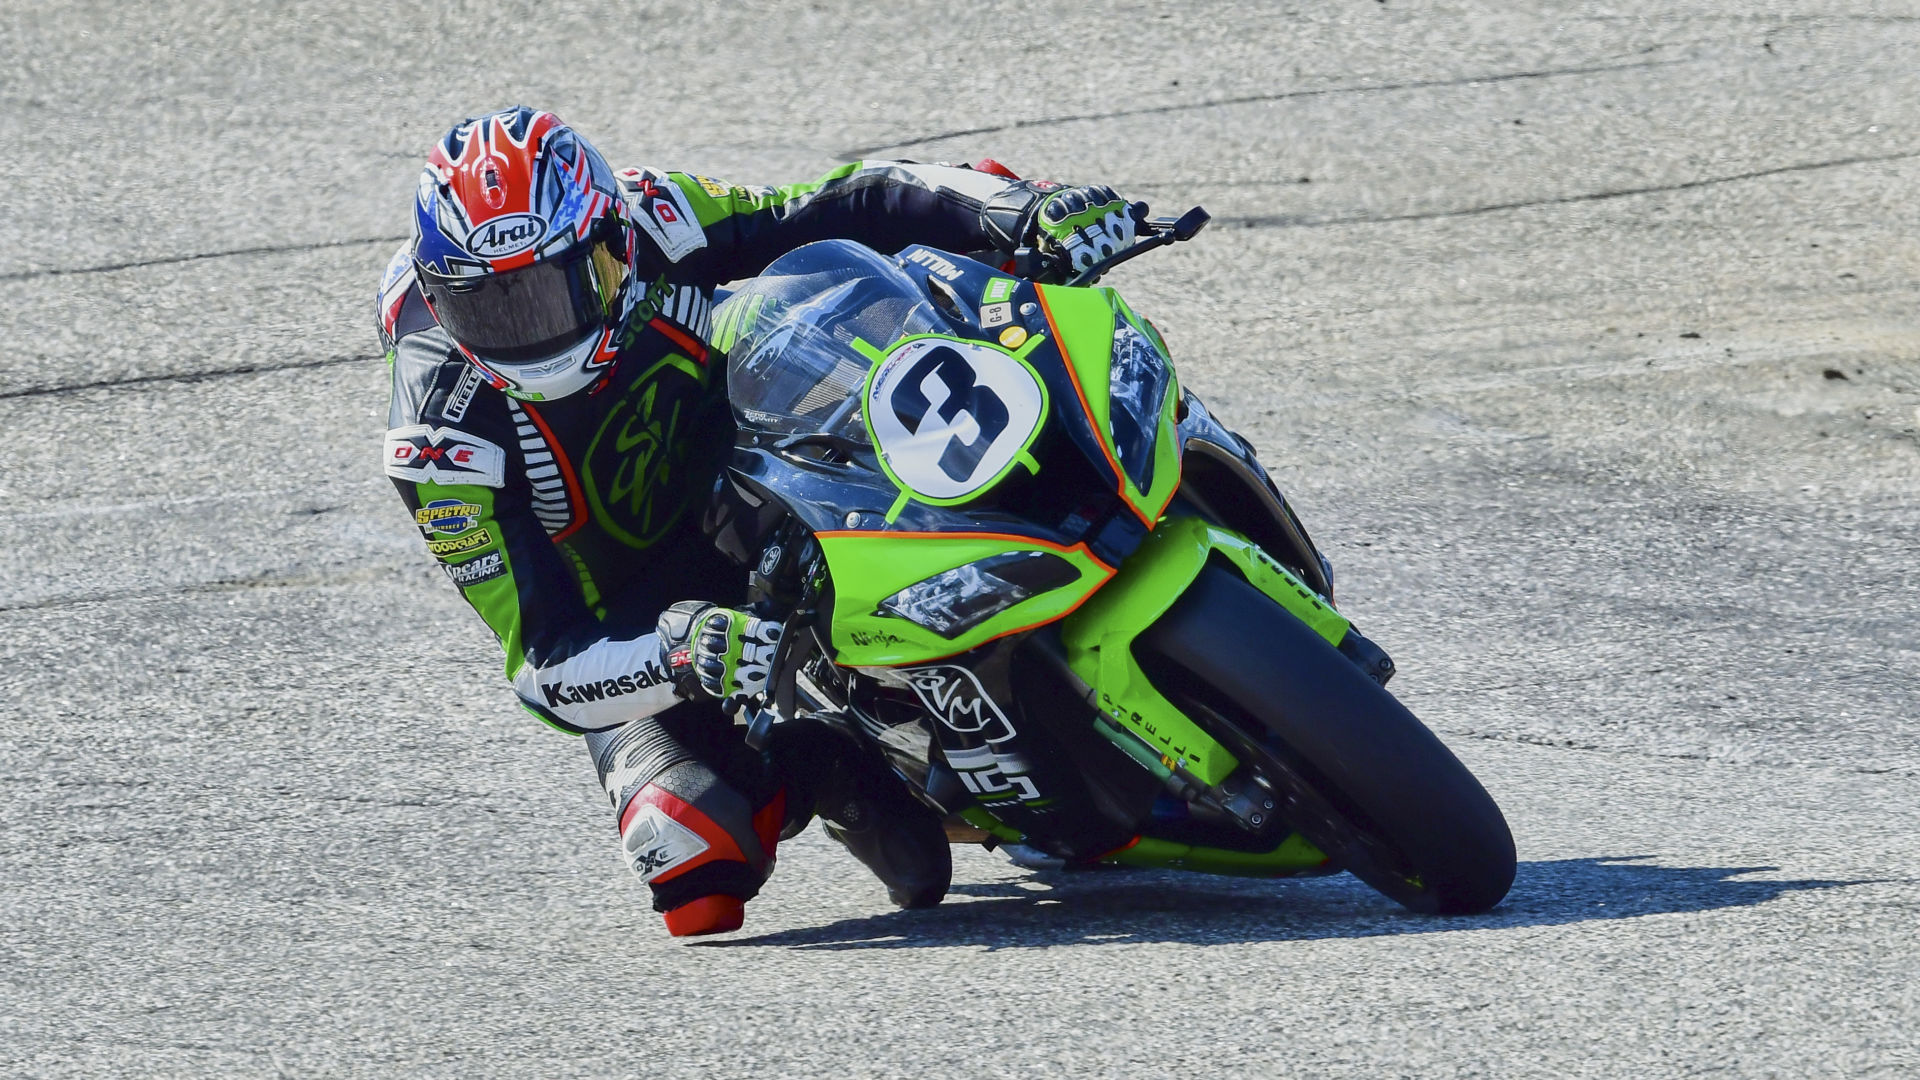 Scott Mullin (3), as seen in action at New Hampshire Motor Speedway on July 31. Photo by Martin Hanlon, courtesy NEMRR.